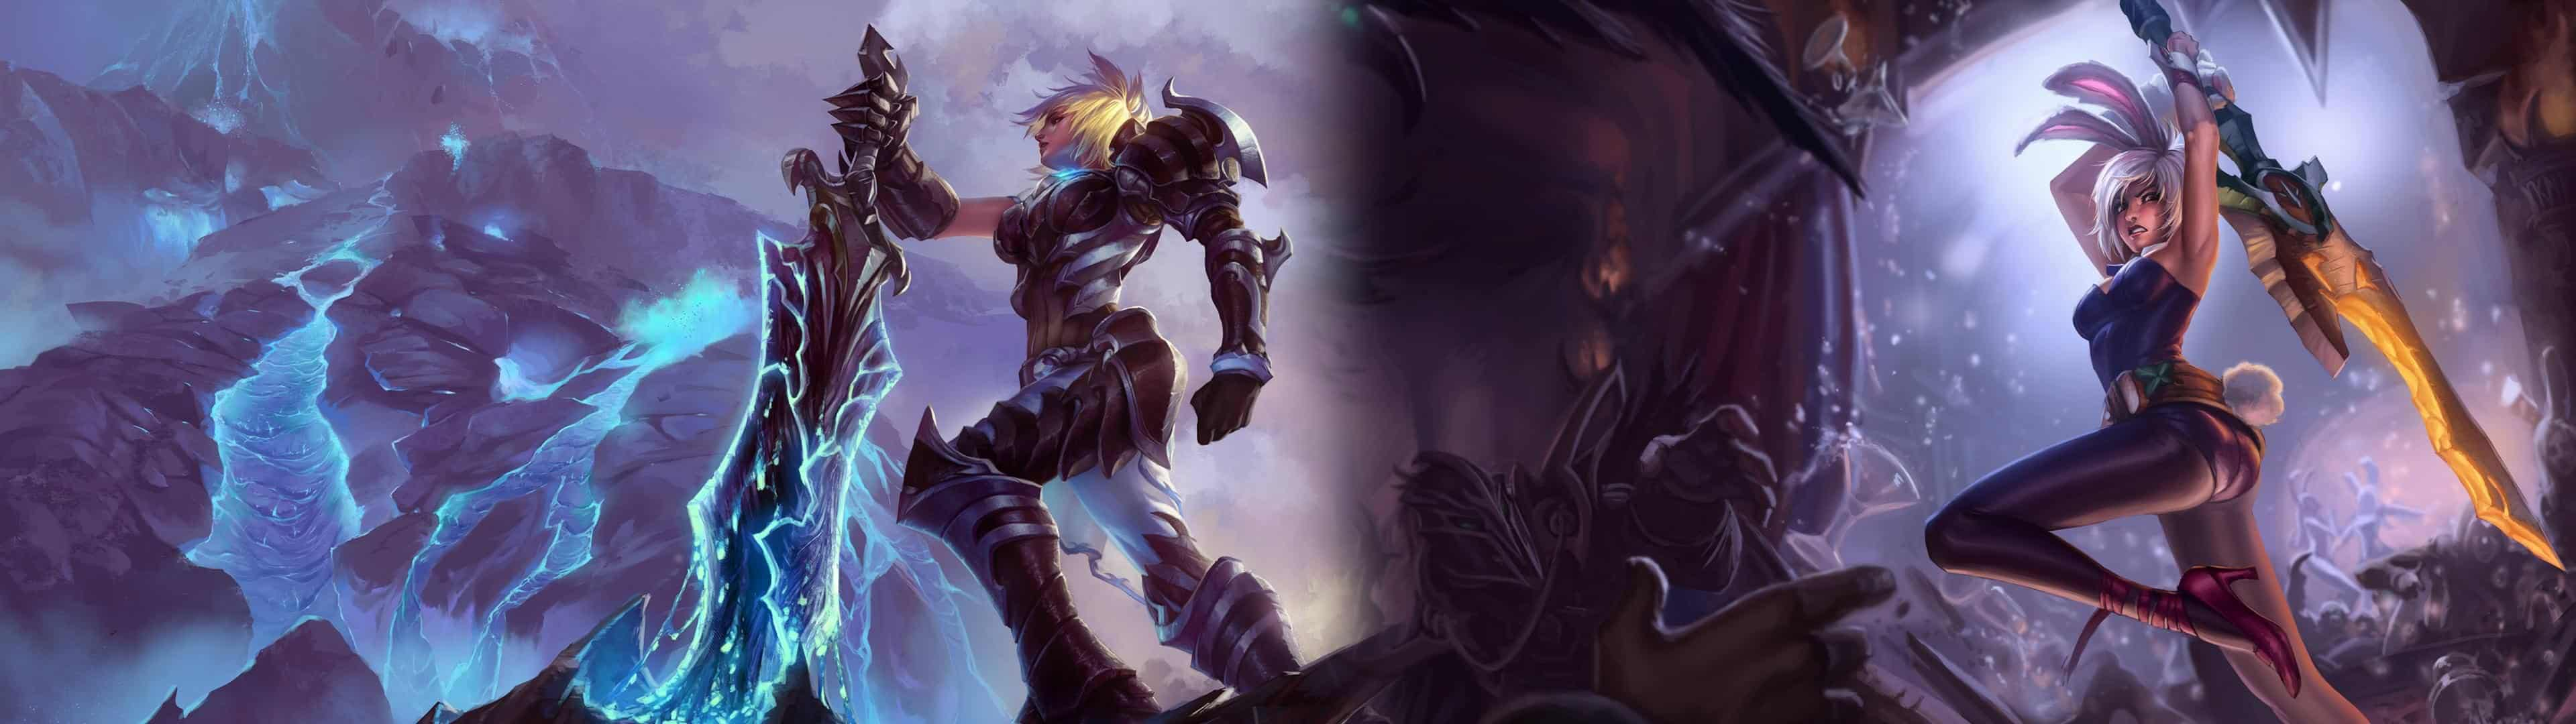 League Of Legends Riven Dual Monitor Wallpaper Pixelz